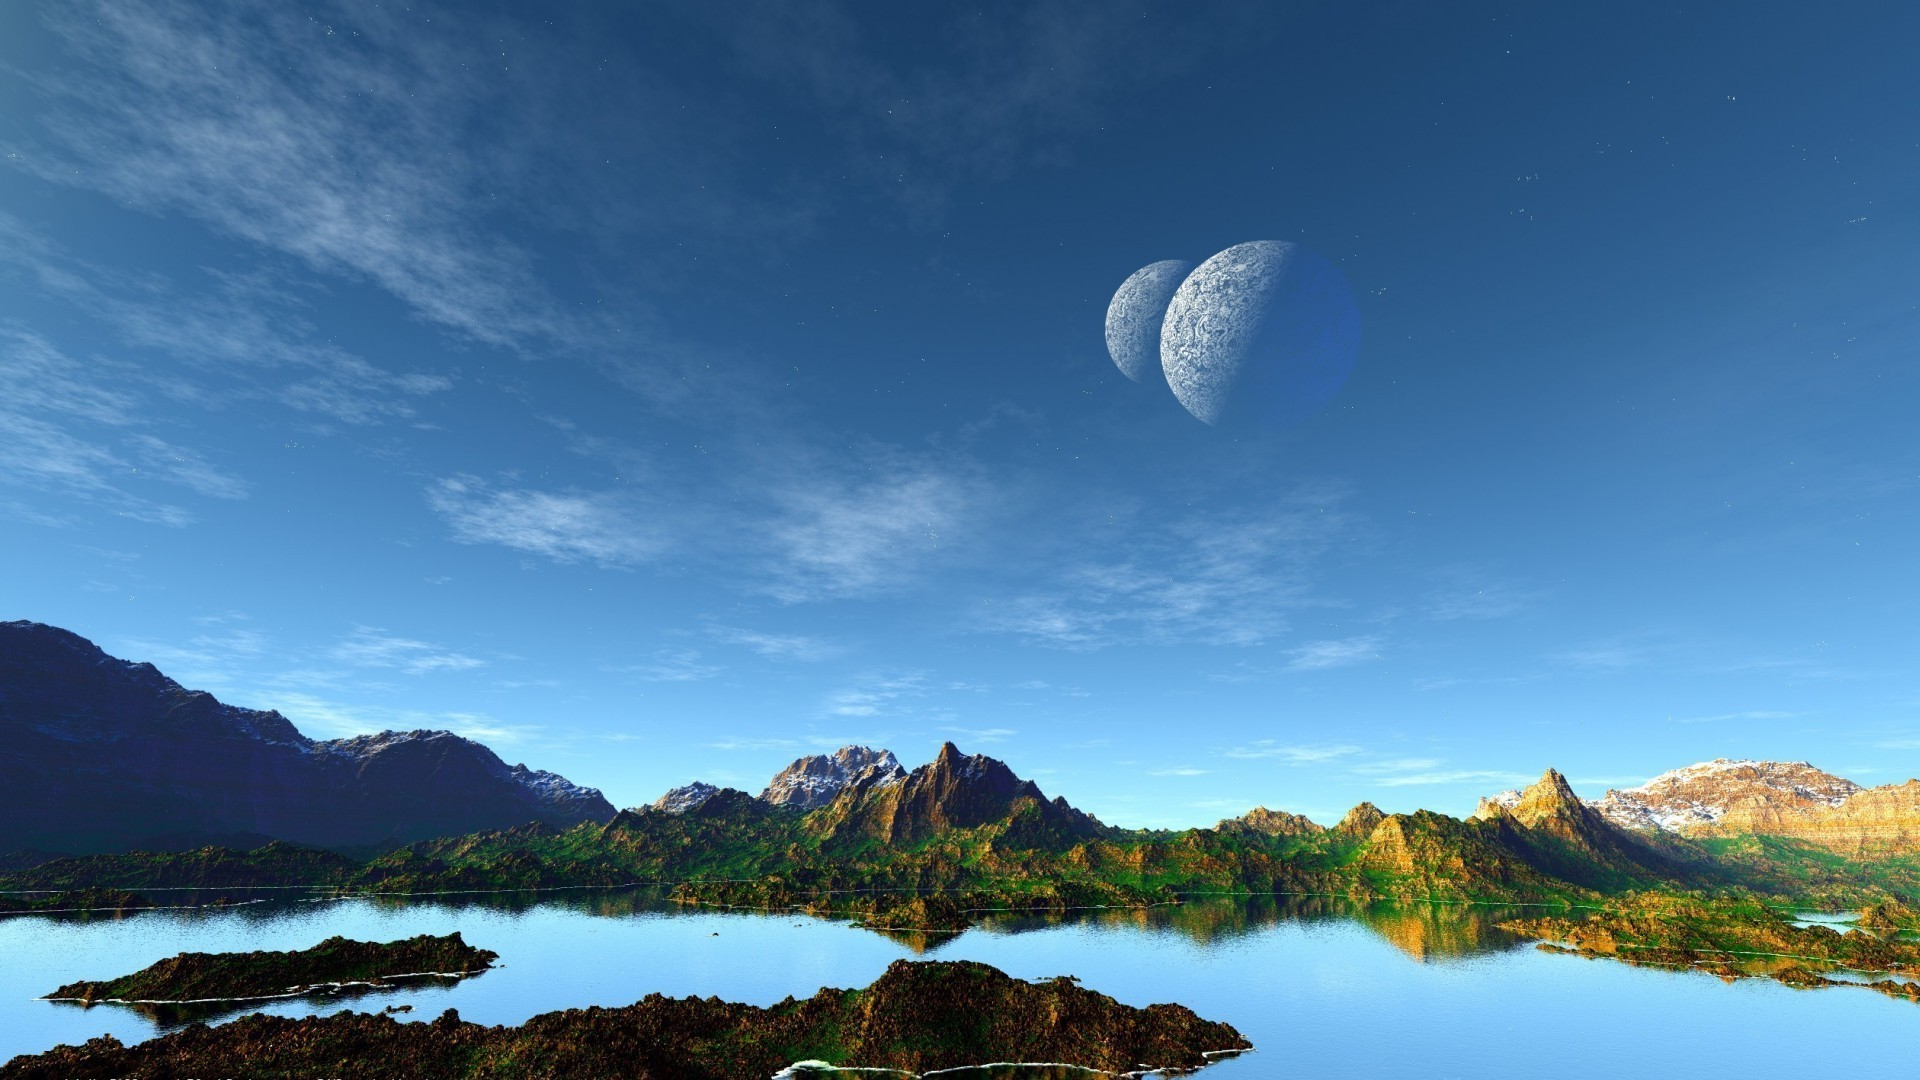 Planet,sky,lake,mountains